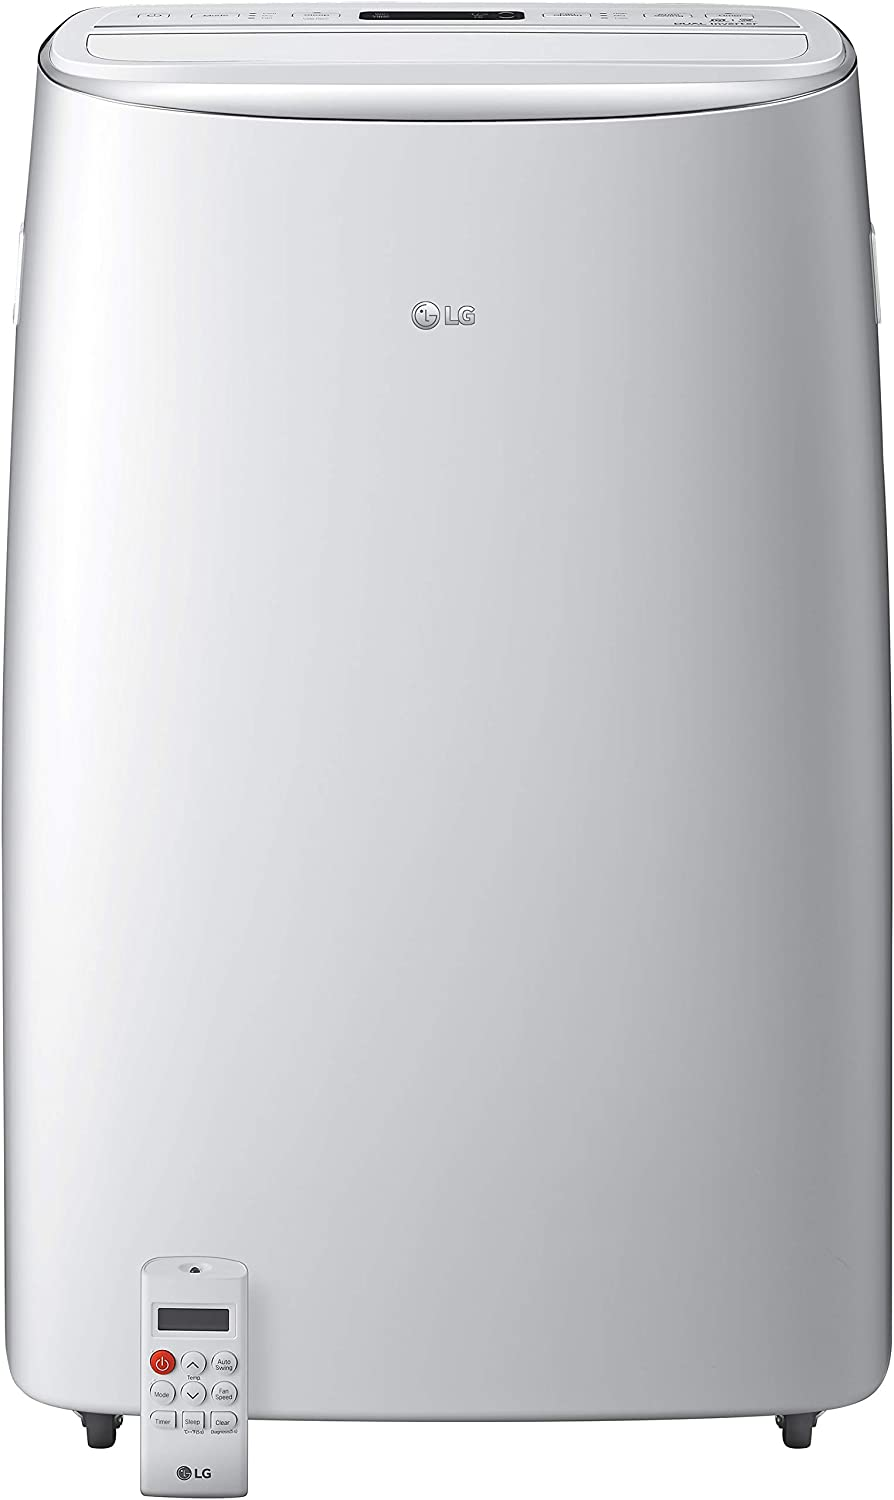 LG 115V Dual Inverter Technology Portable Air Conditioner, White